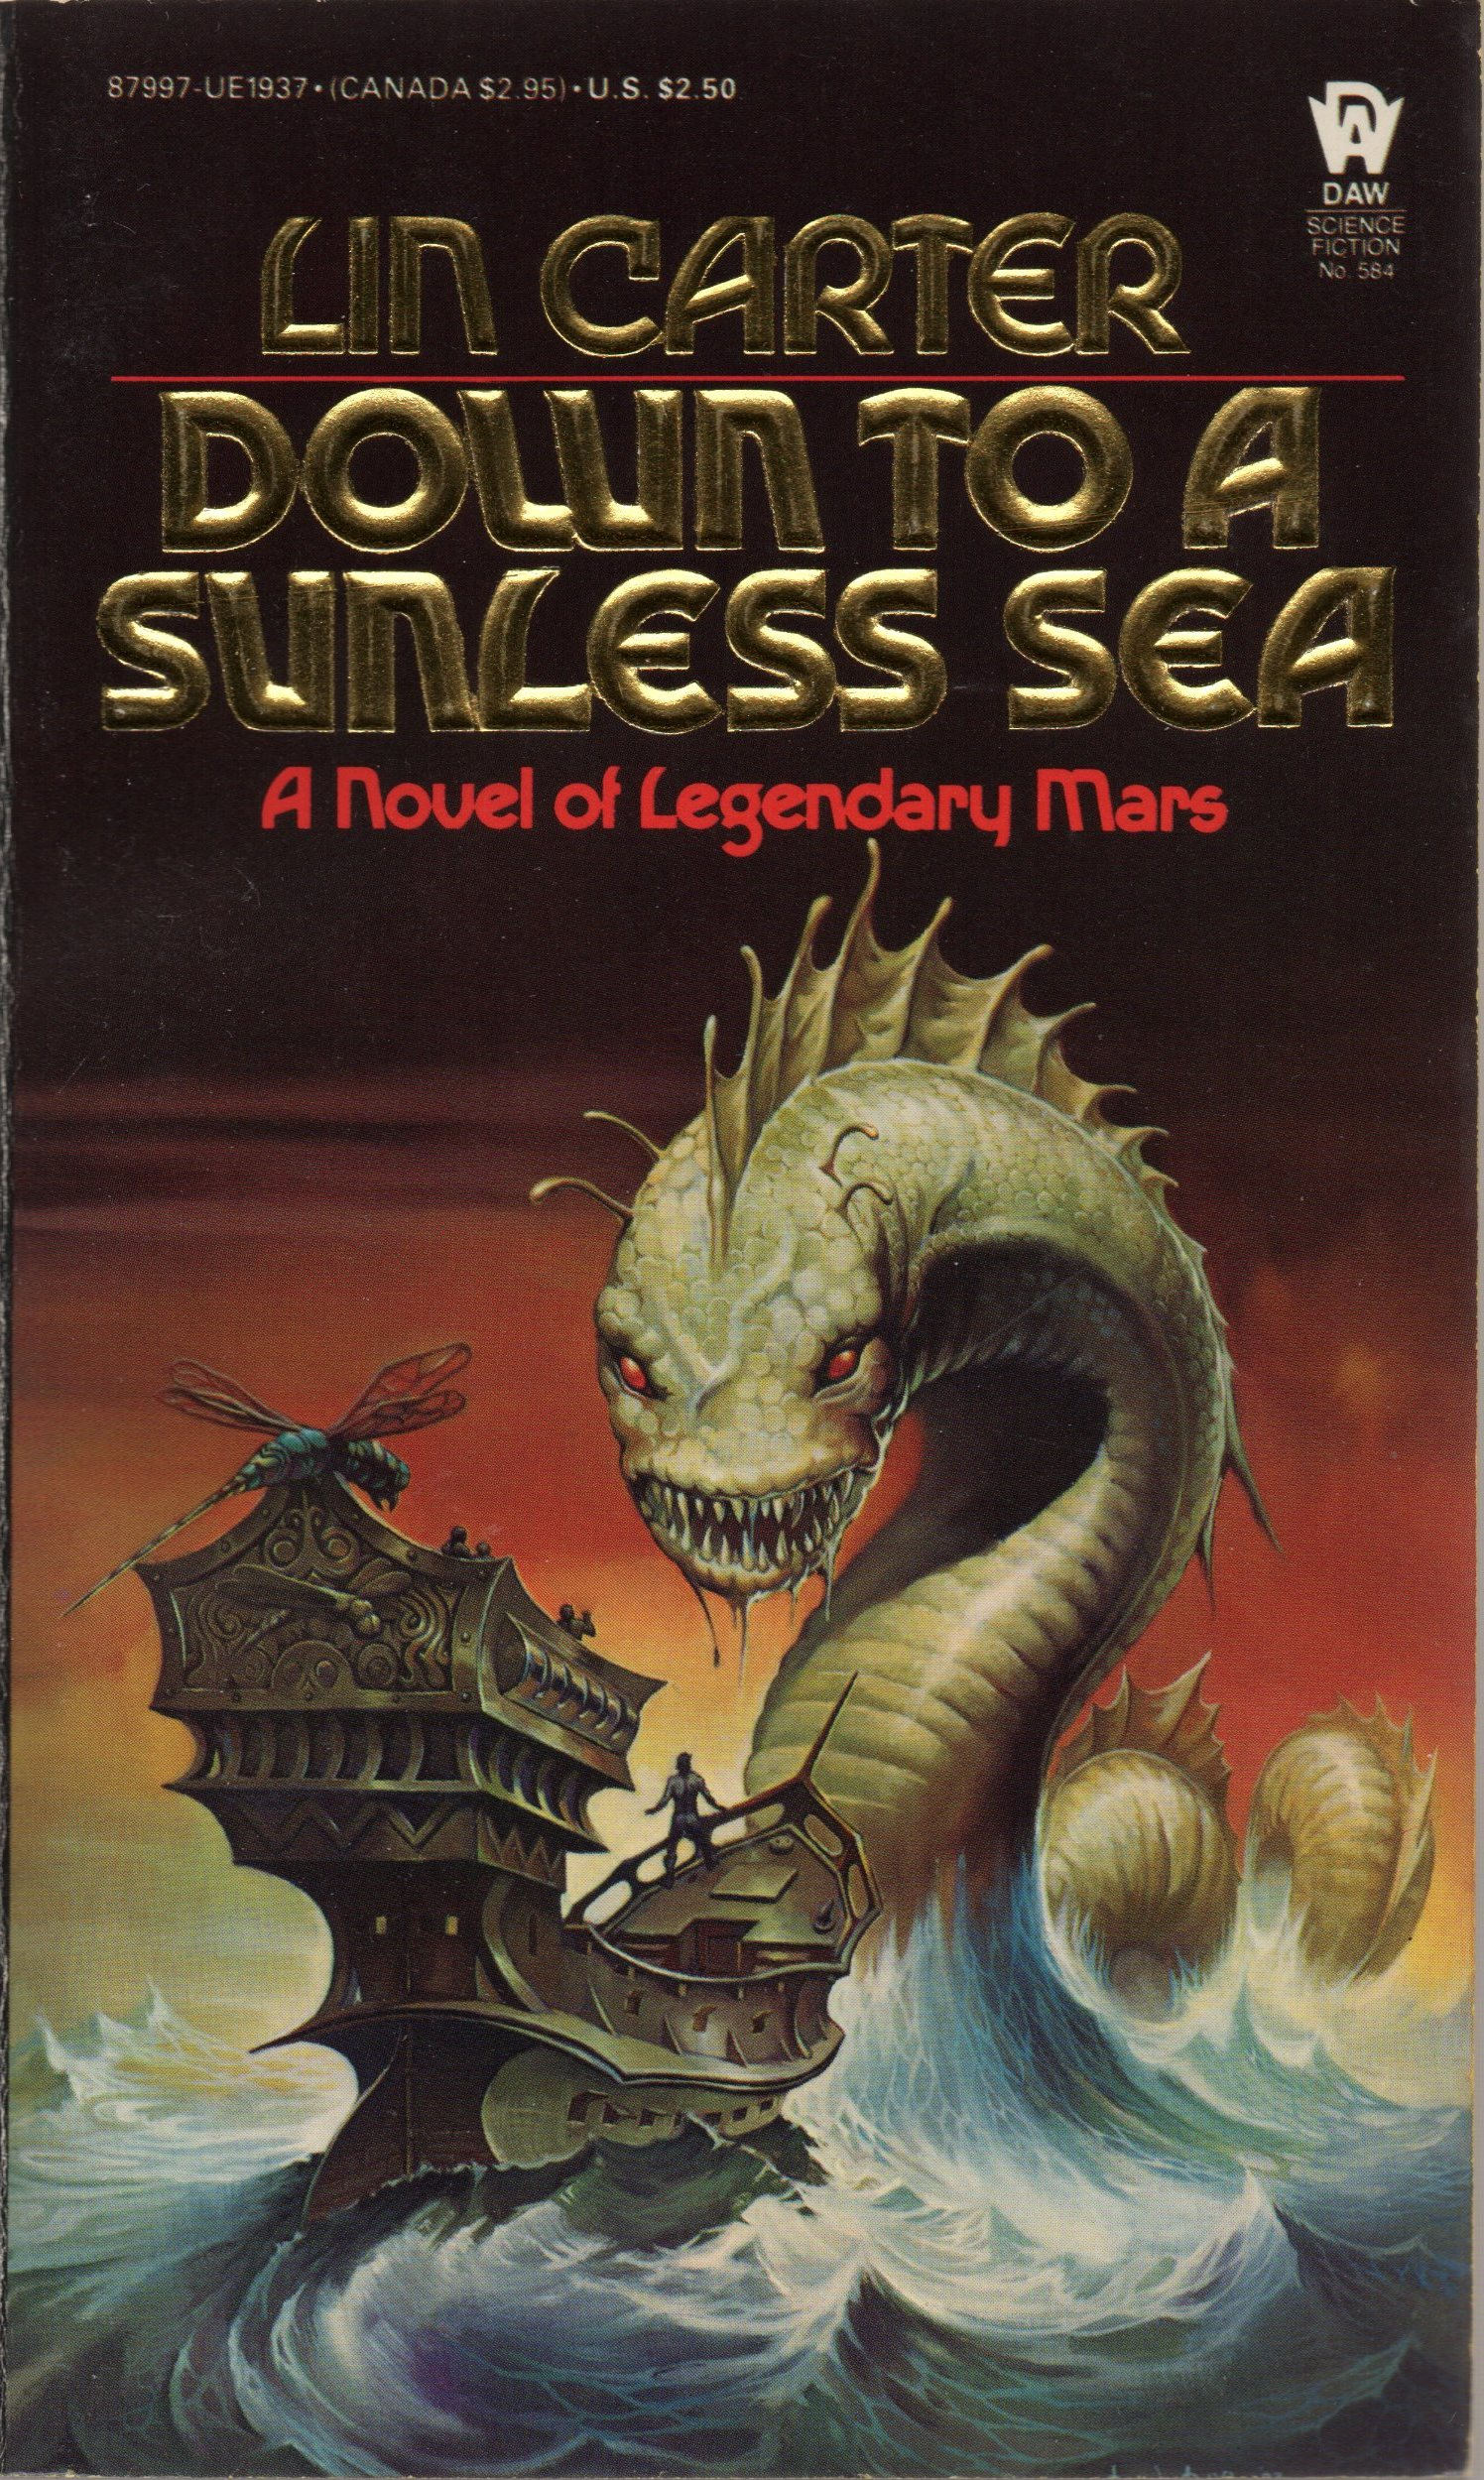 down to a sunless sea by A couple months ago a friend/coworker lent me his copy of the books of magic as my first introduction to neil gaiman he's a huge fan and was eager to convert me.